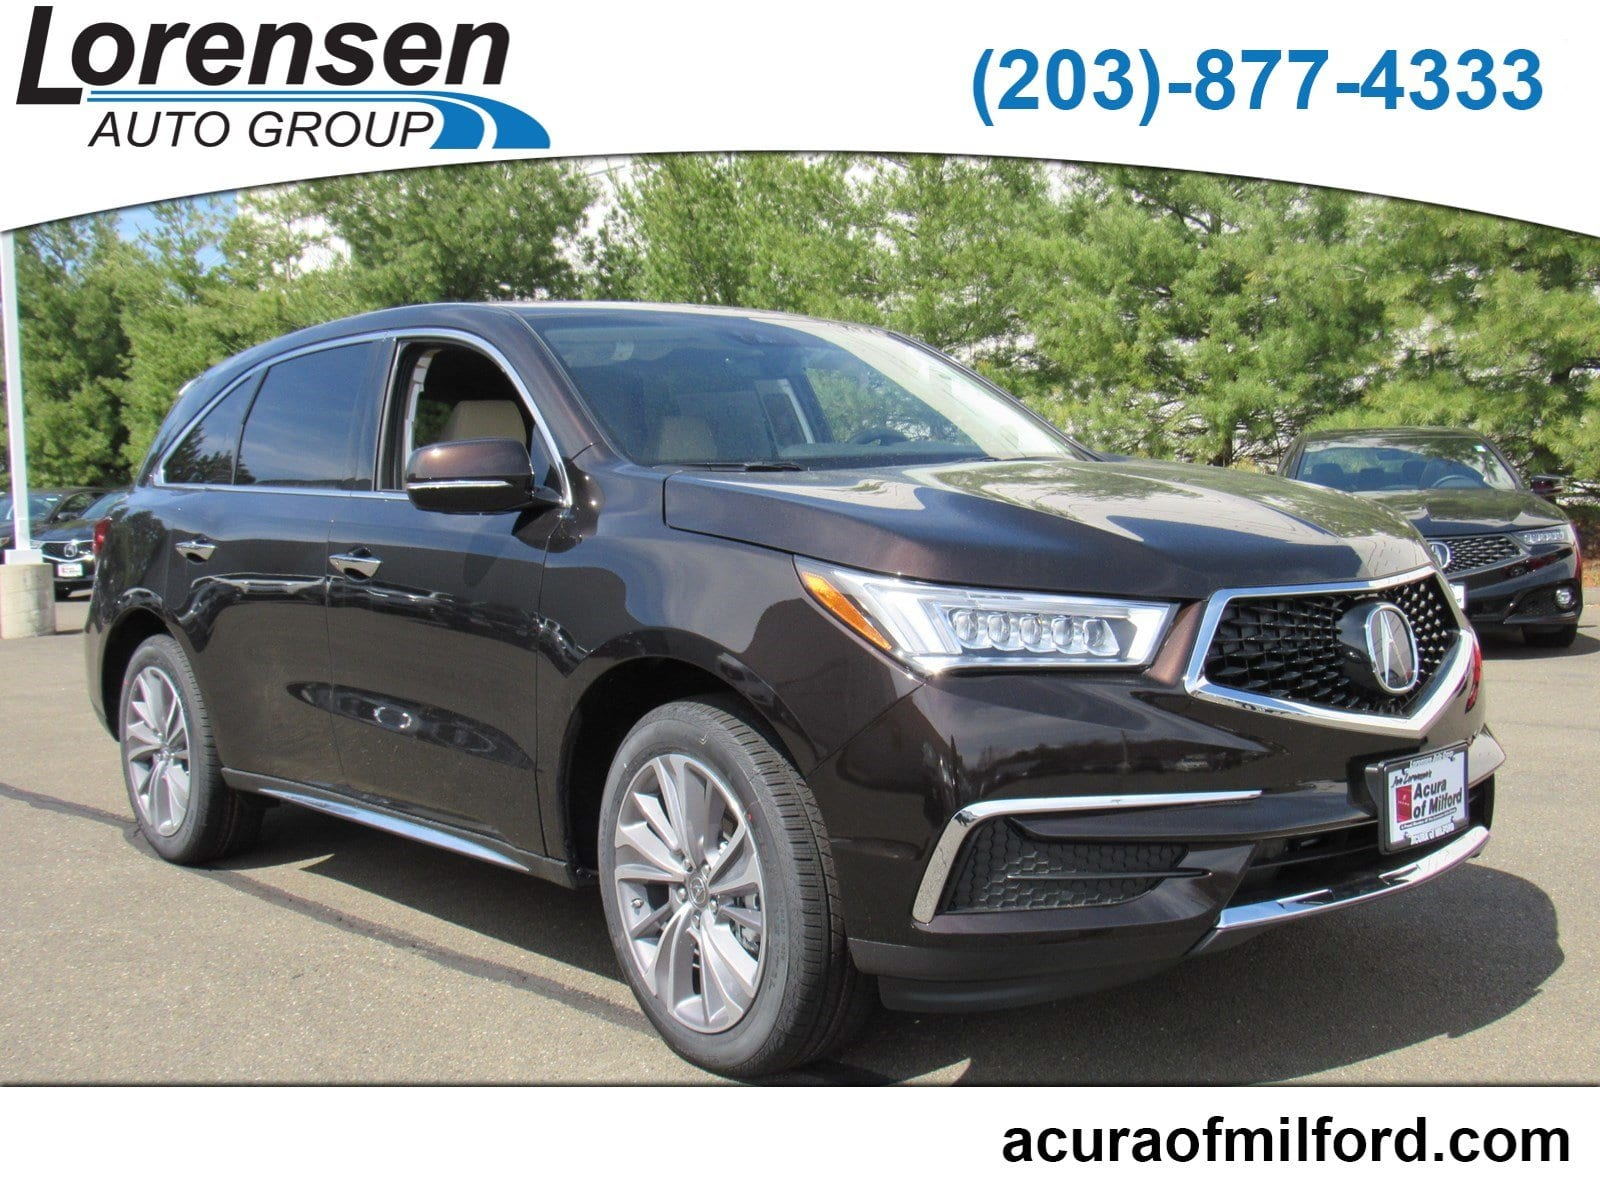 elite small test led me full name compact review you german of looking a that awd isn acura as there road time the comes news headlamps ll standard i with save gallery carcostcanada rdx t suv